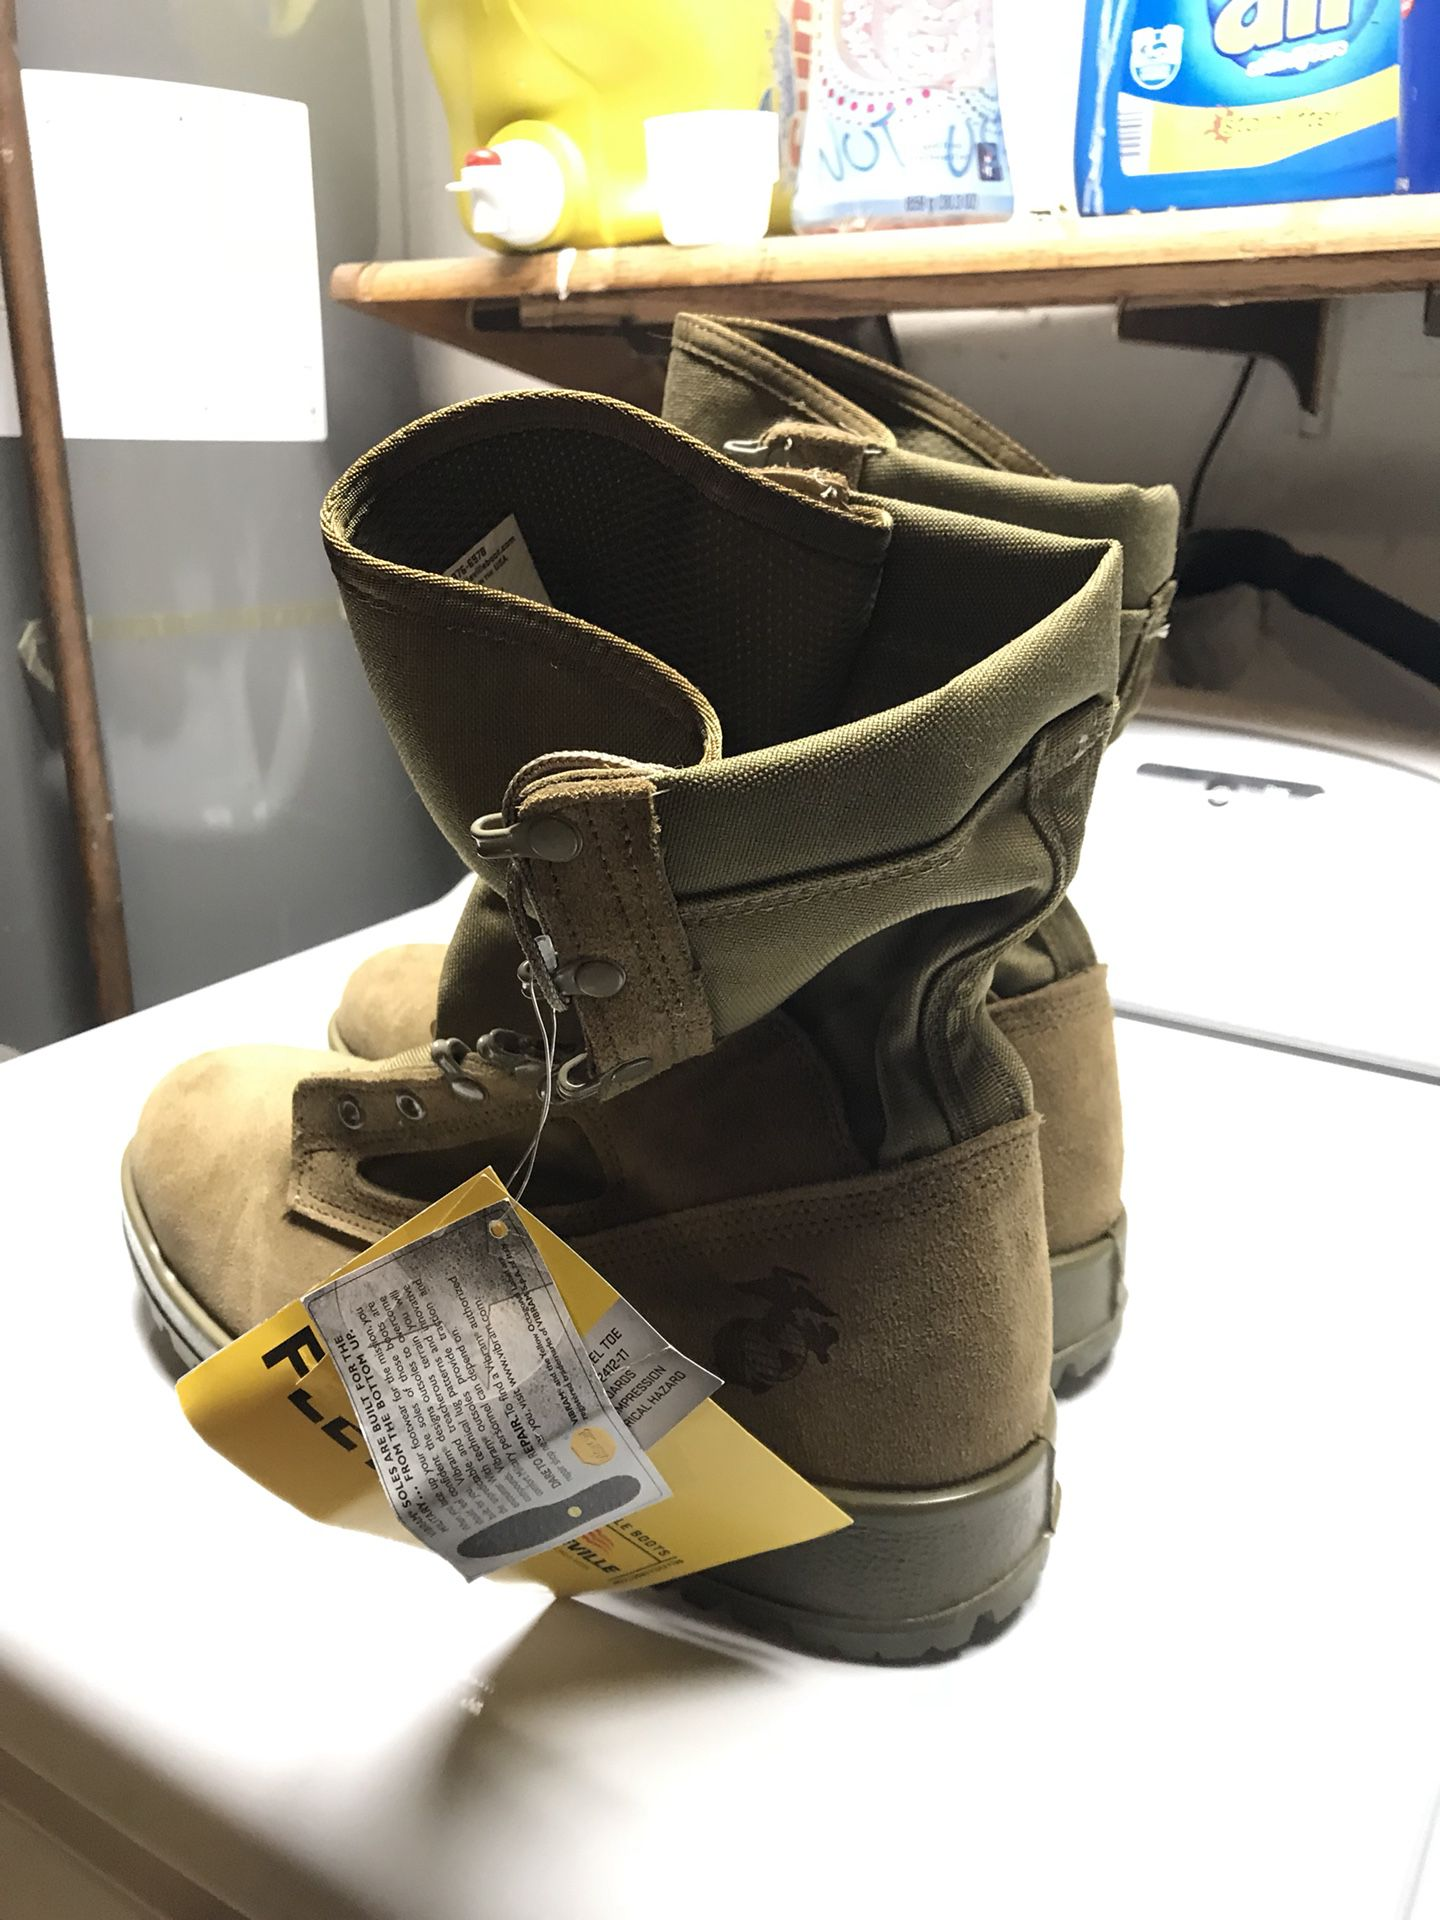 Work boots 11w